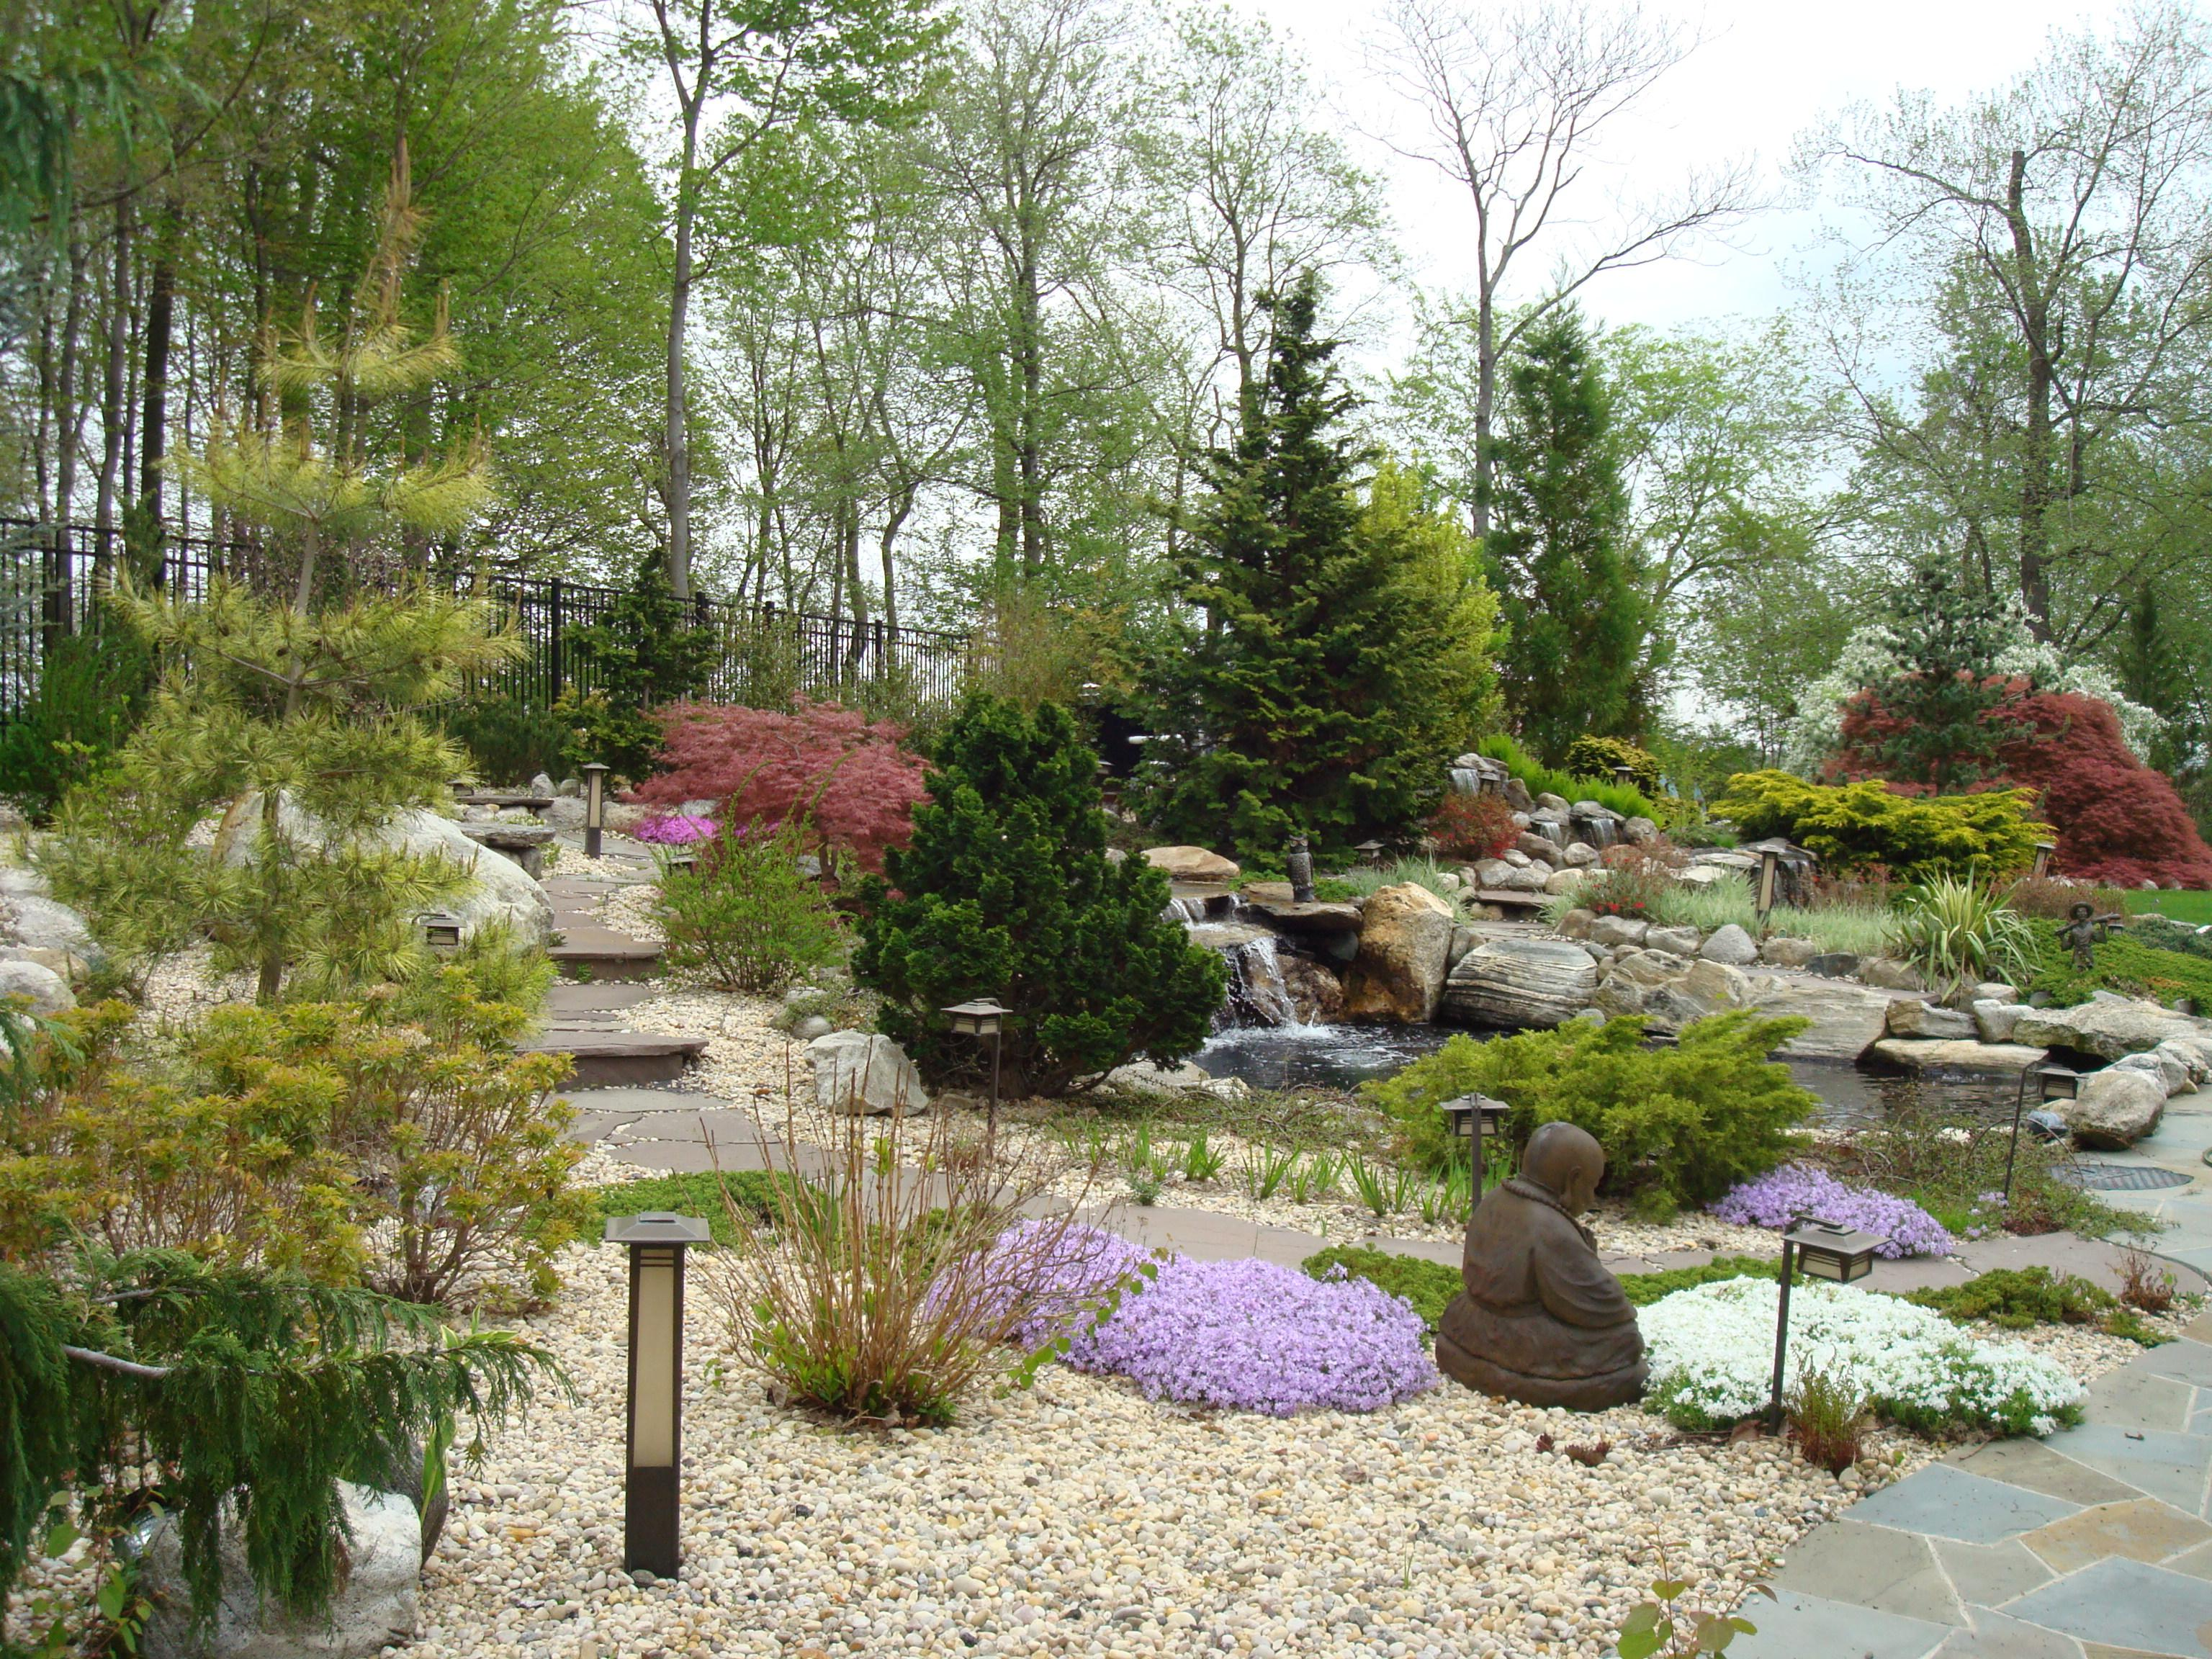 In this specialized landscape design the homeowners love for Asian style gardens was brought together with specimen plants and trees. Specially placed large rocks form unique formations.